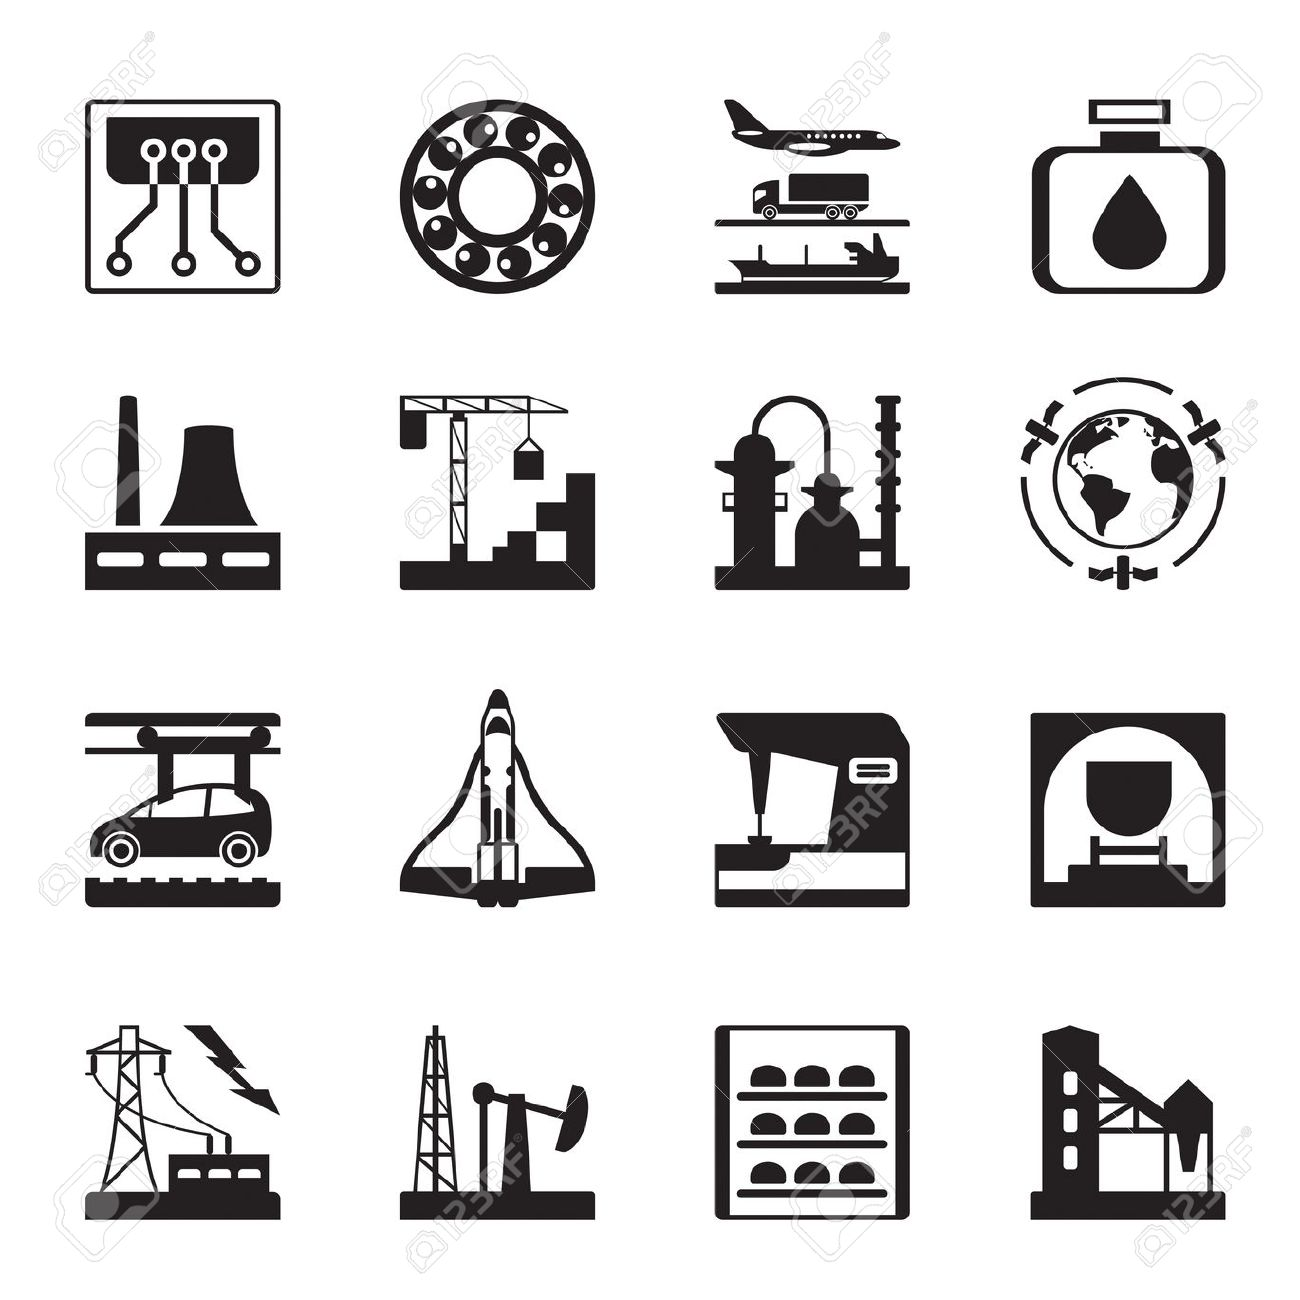 Plants For Light And Heavy Industry Royalty Free Cliparts, Vectors.